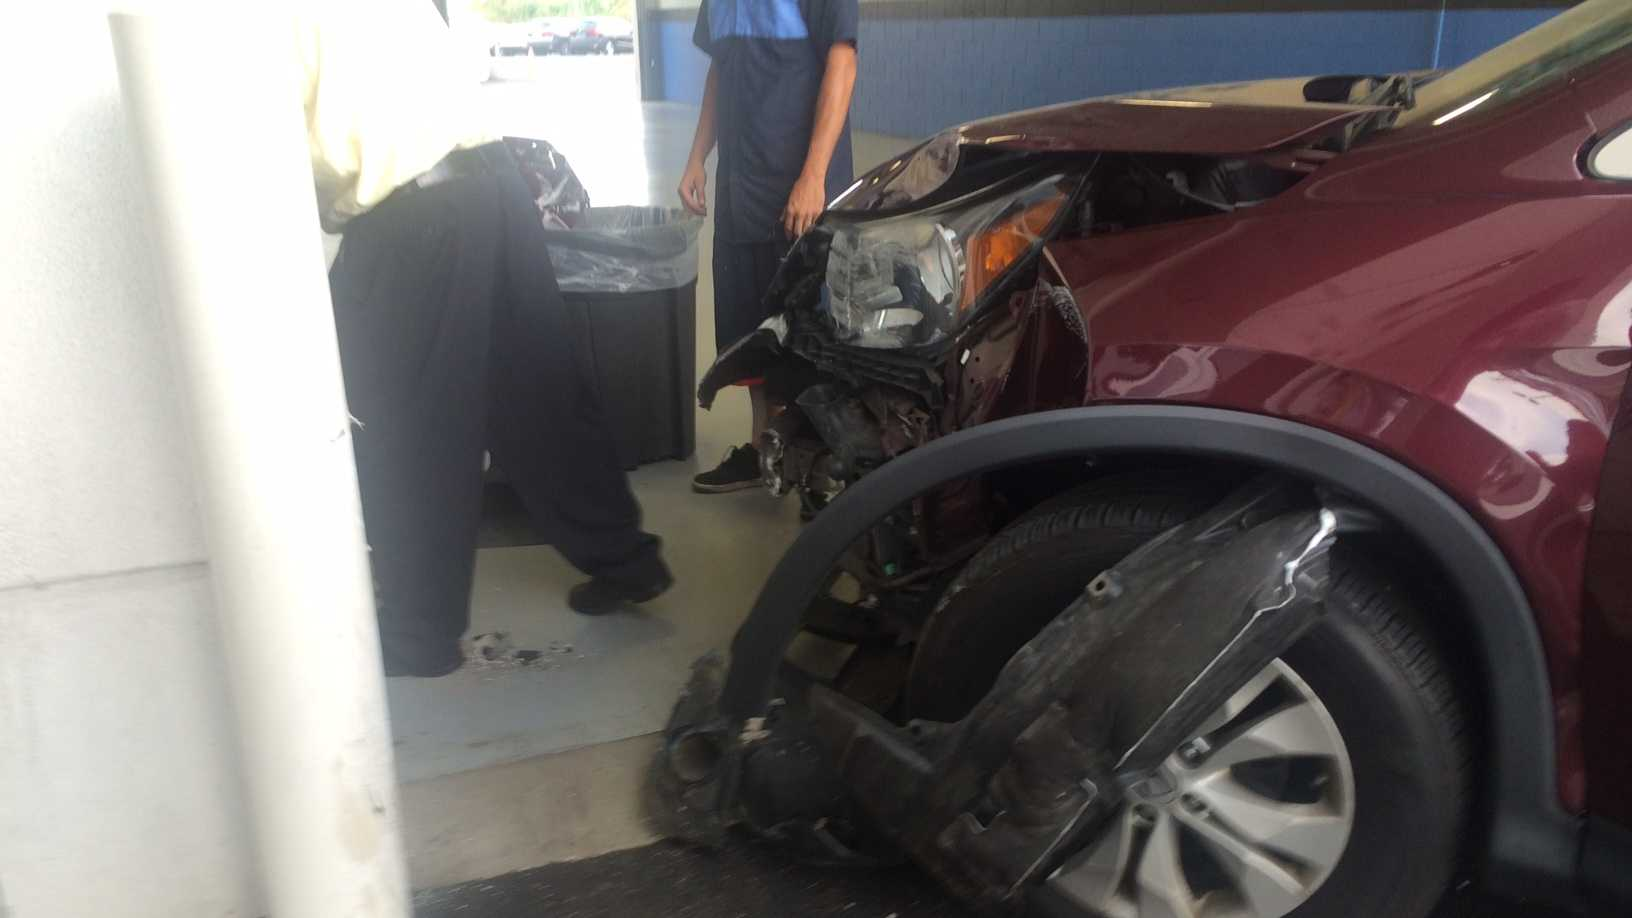 A car crashed into the service drive of the Valley Honda in Monroeville Monday morning.